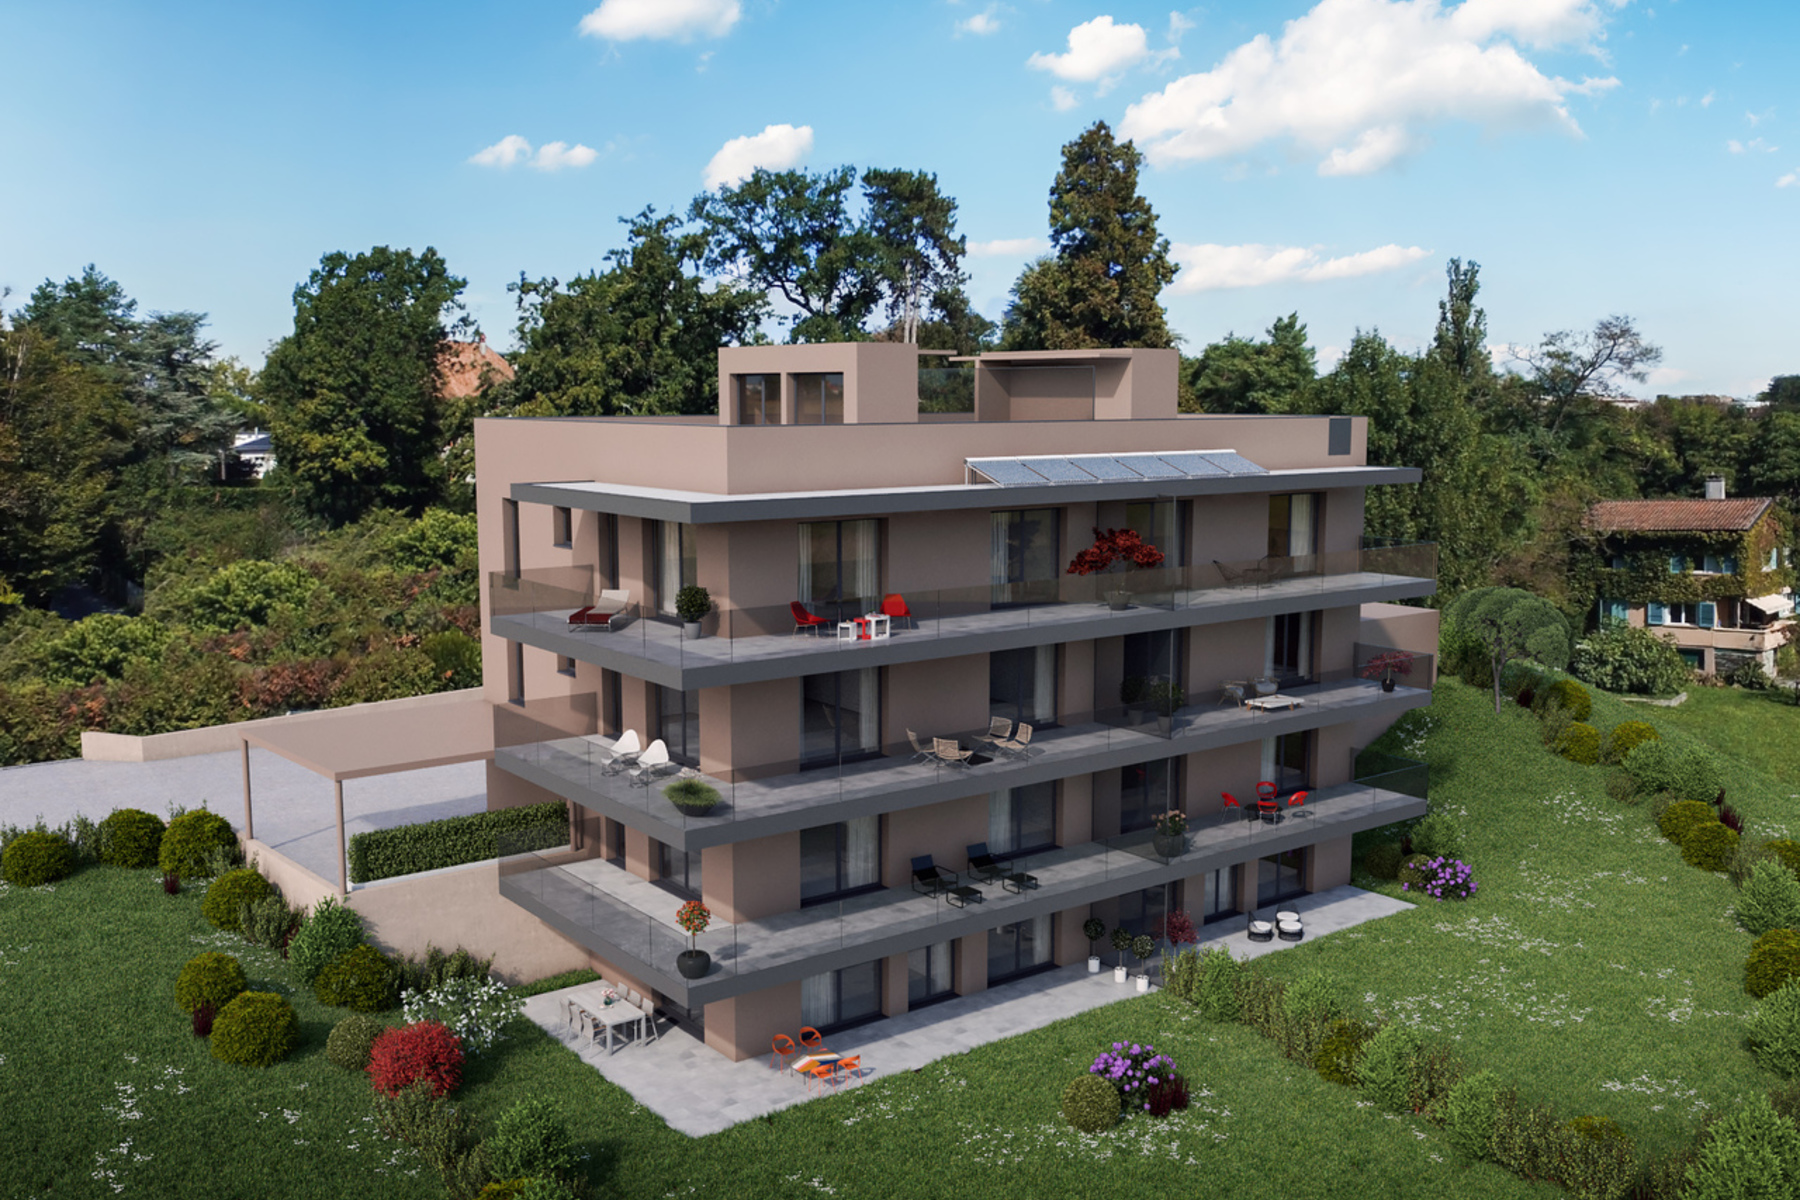 Квартира для того Продажа на 1st floor - Option II 4 room East apartment Champel, Geneva, Жене́ва, 1206 Швейцария